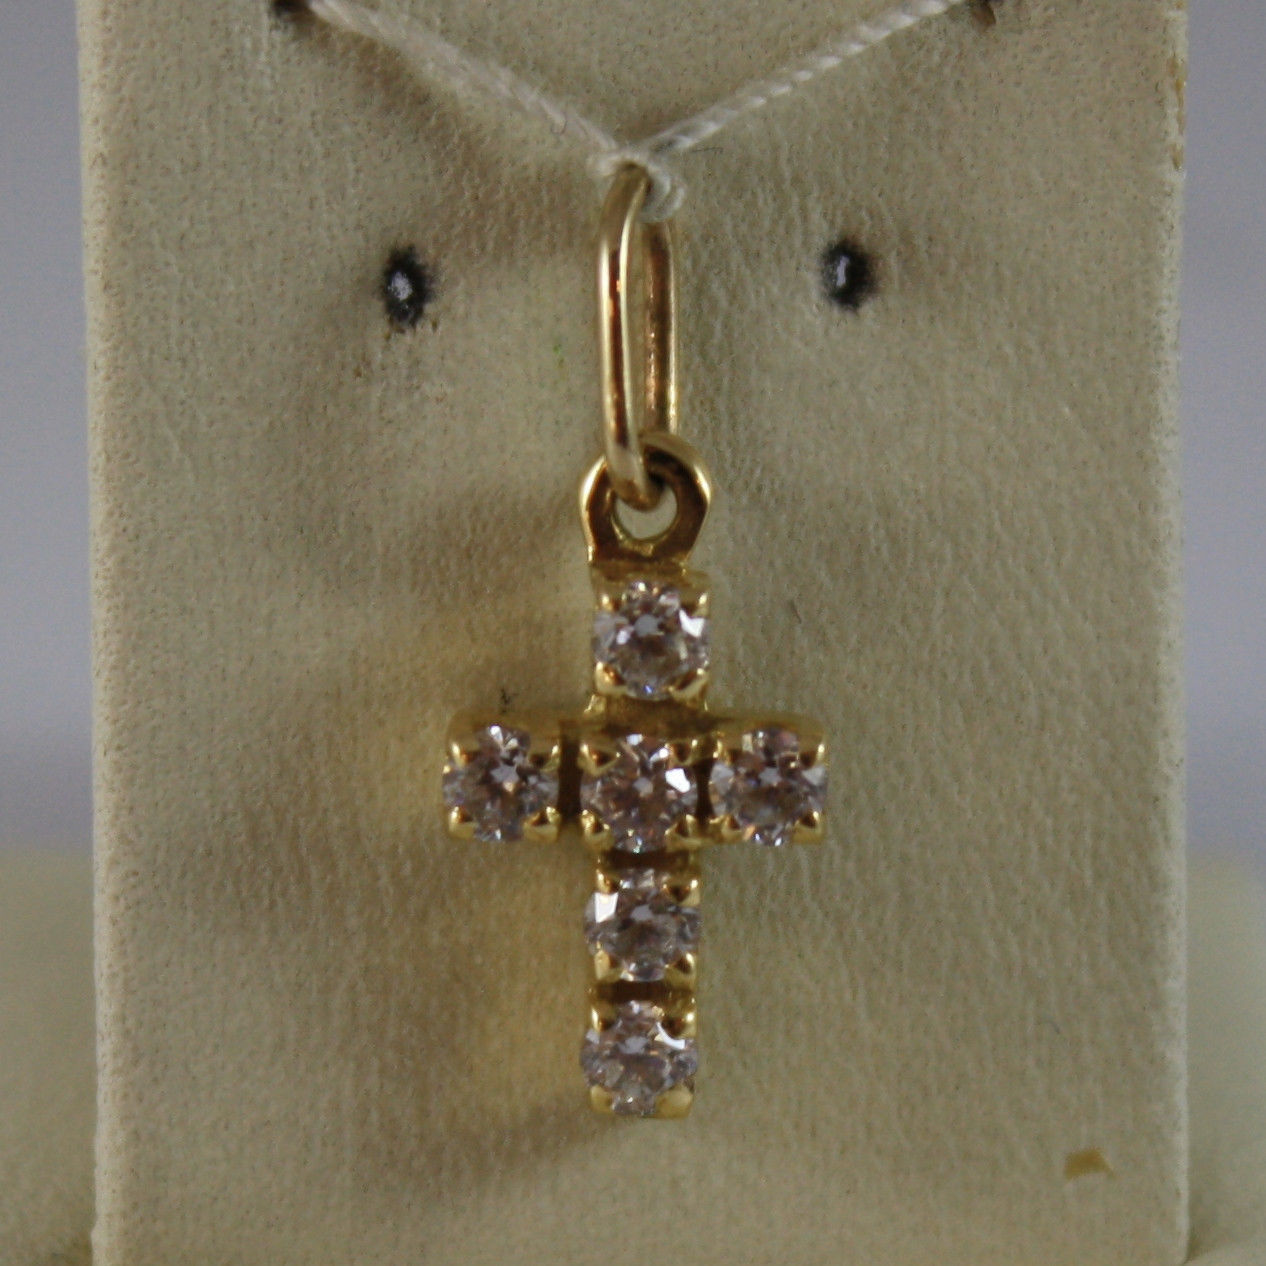 SOLID 18K YELLOW GOLD CROSS PENDANT WITH ZIRCONIA LENGTH 0,79 IN MADE IN ITALY